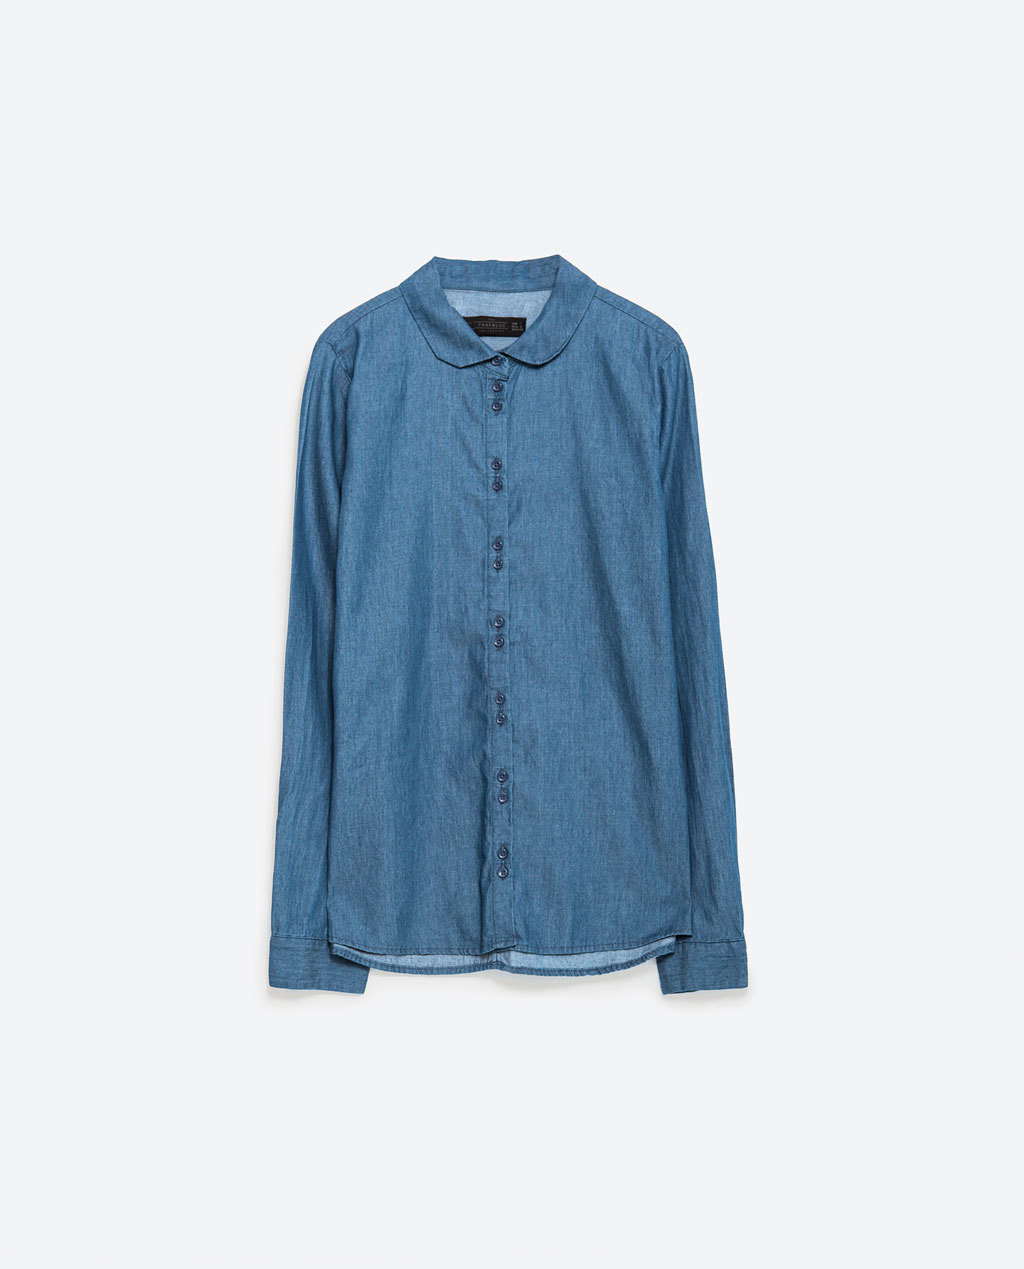 Denim Shirt - neckline: shirt collar/peter pan/zip with opening; pattern: plain; style: shirt; predominant colour: denim; occasions: casual; length: standard; fibres: cotton - stretch; fit: straight cut; sleeve length: long sleeve; sleeve style: standard; texture group: denim; pattern type: fabric; season: a/w 2015; wardrobe: basic